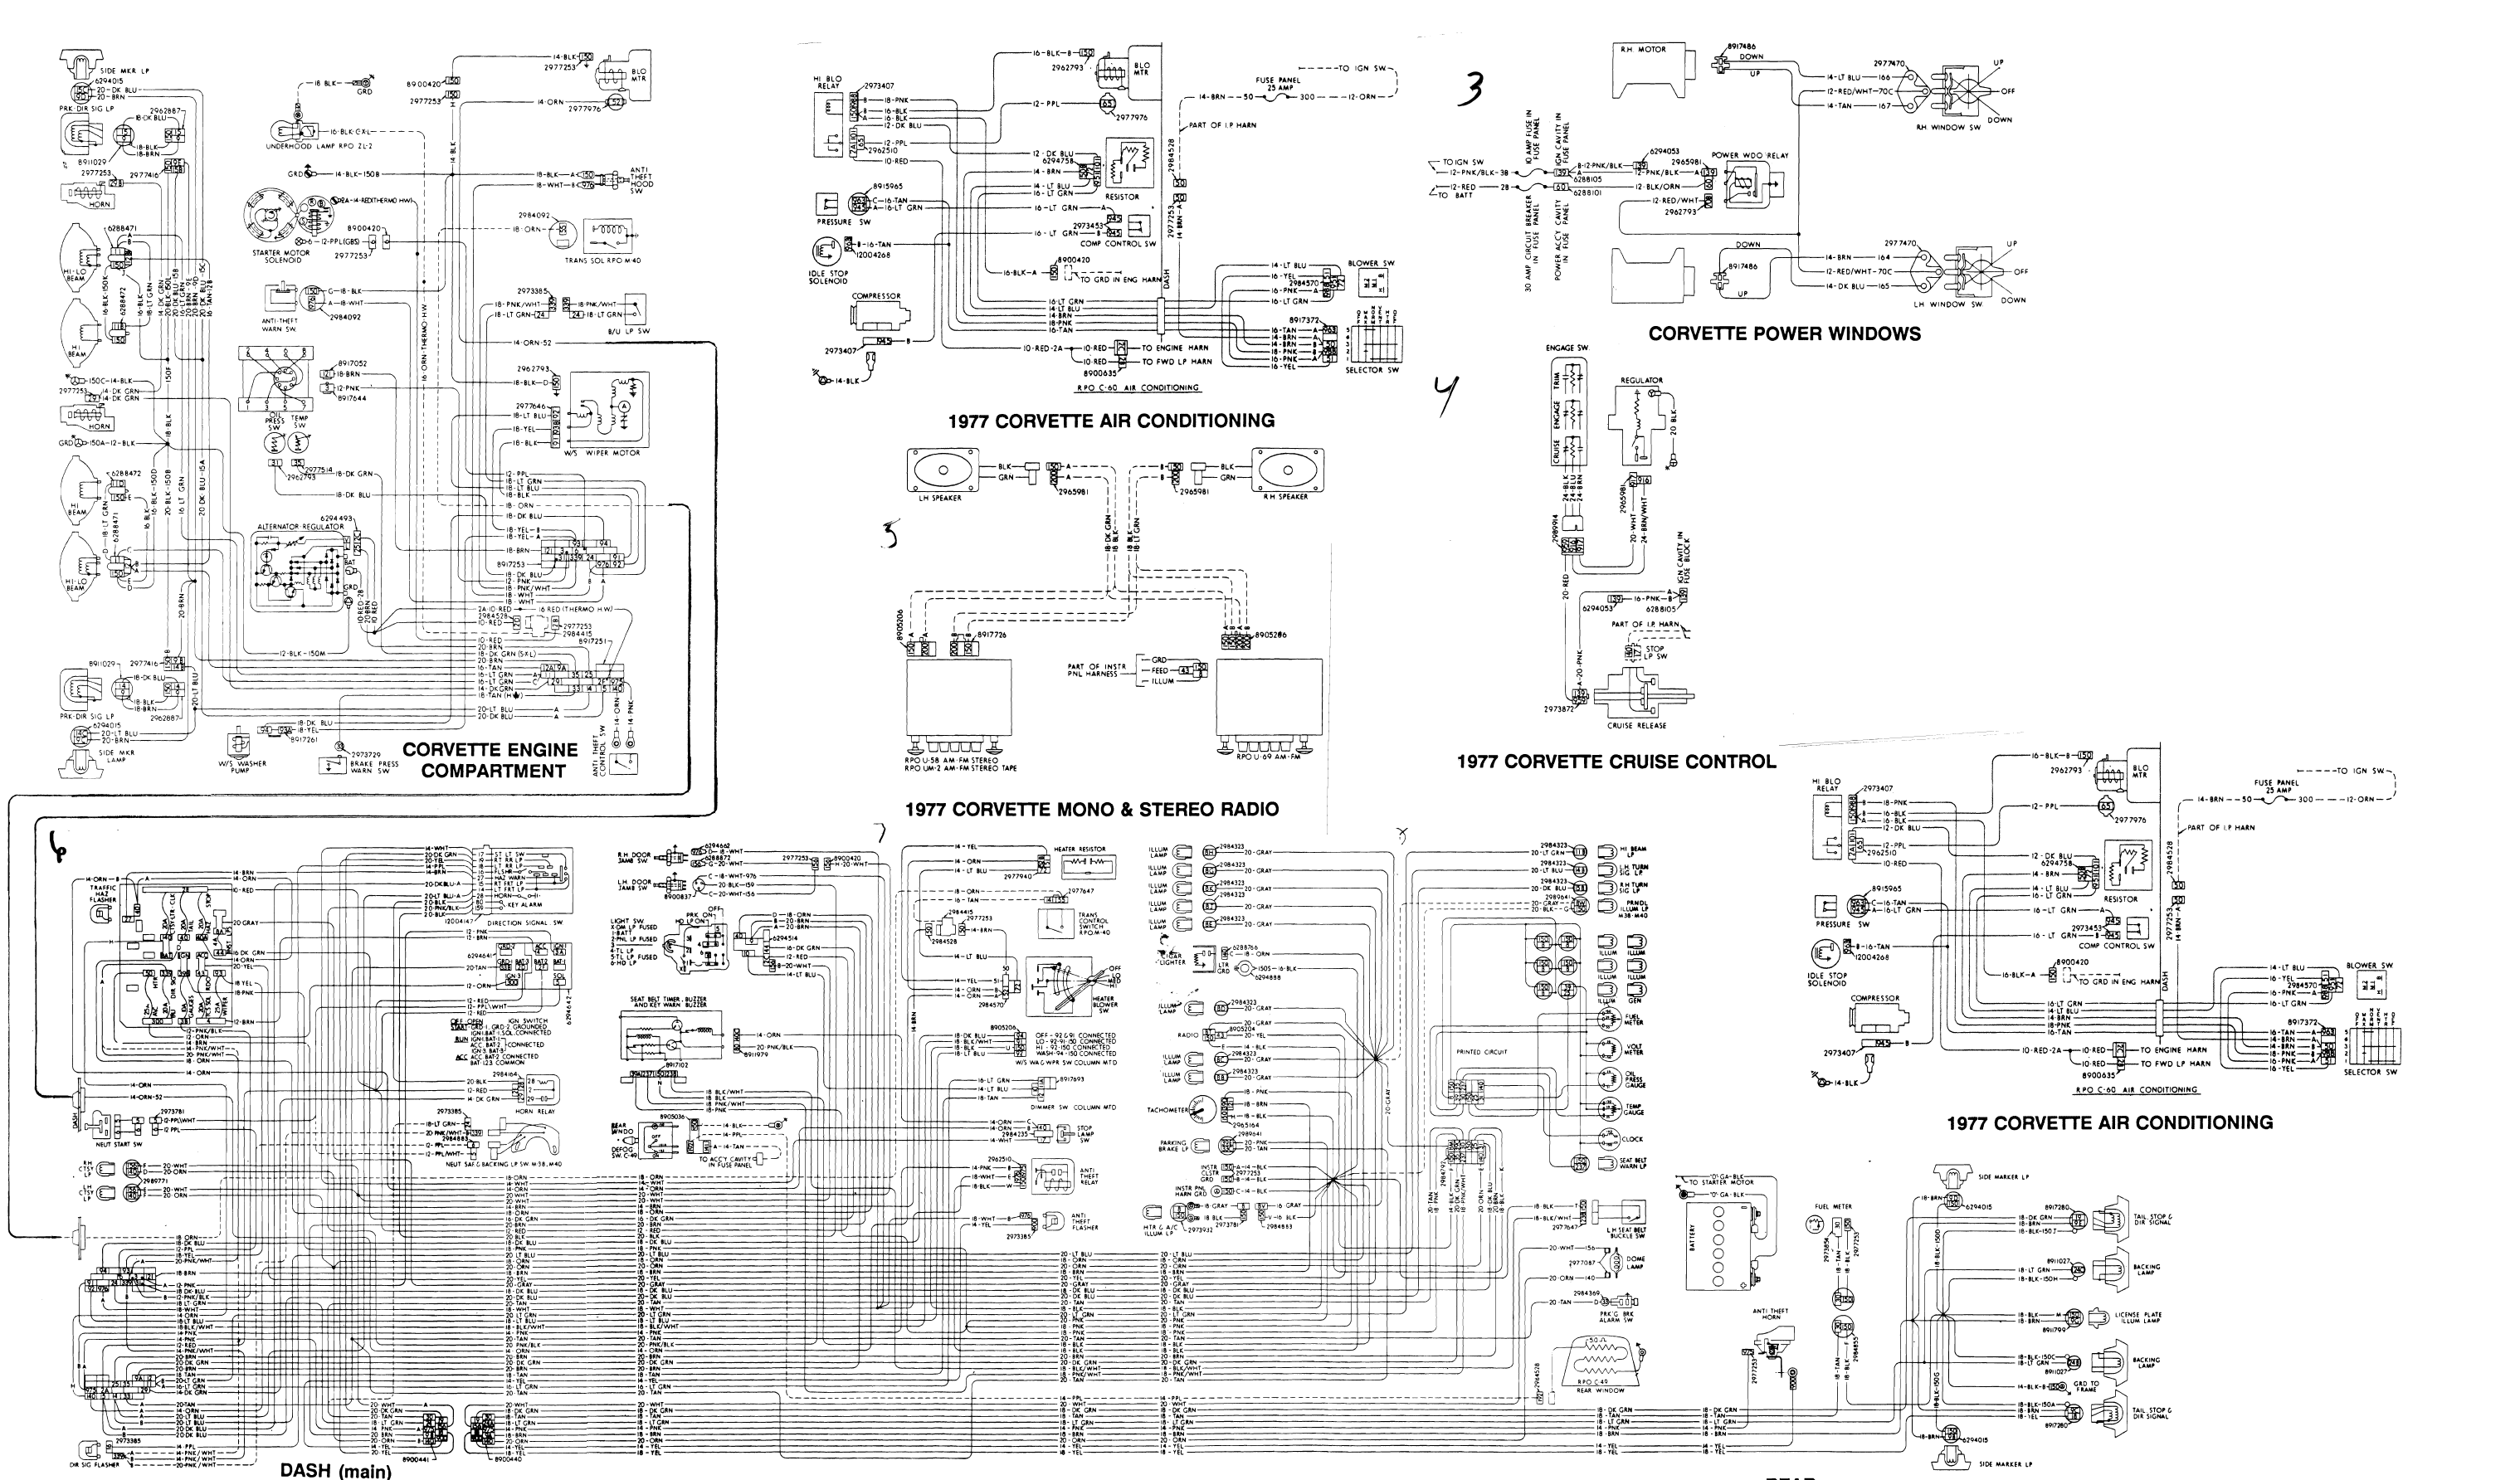 1977 trace harness website 1974 corvette tracer wiring diagram tracer schematic willcox 1977 corvette wiring diagram at gsmportal.co